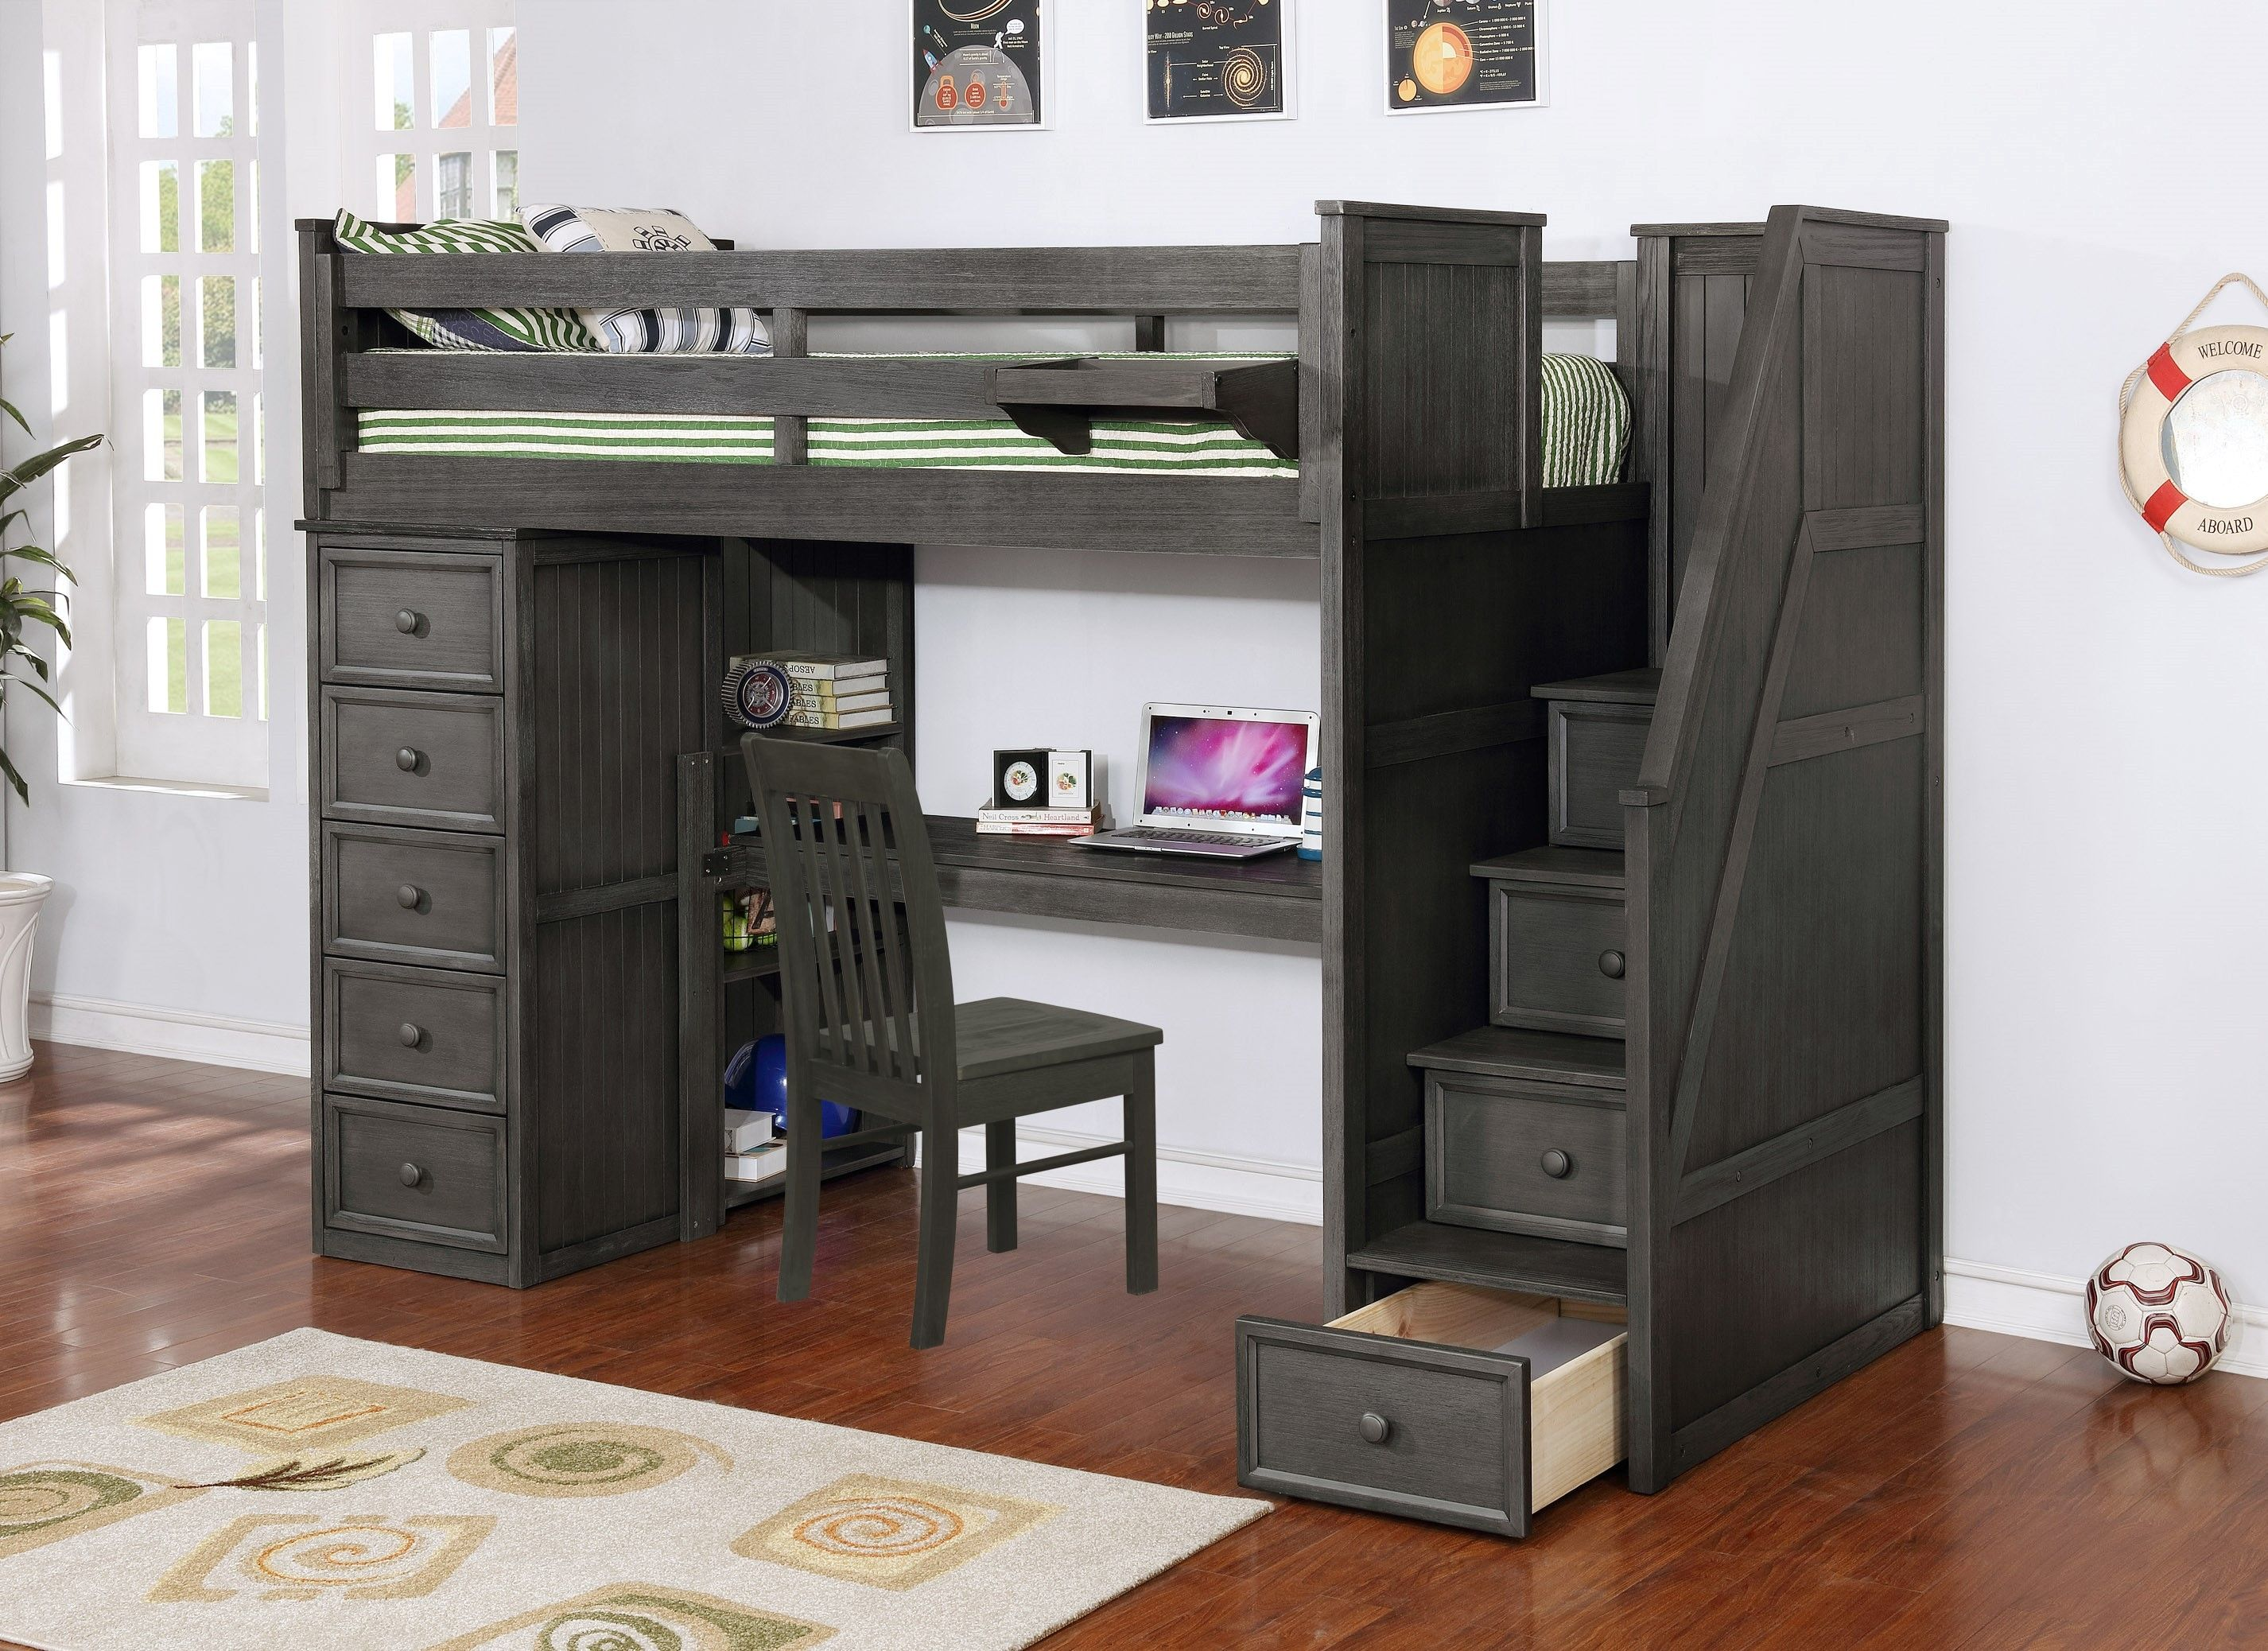 Resort Life Twin Size Loft Bed With Desk In Washed Grey Eola Collection In 2020 Loft Bed Twin Loft Bed Twin Size Loft Bed